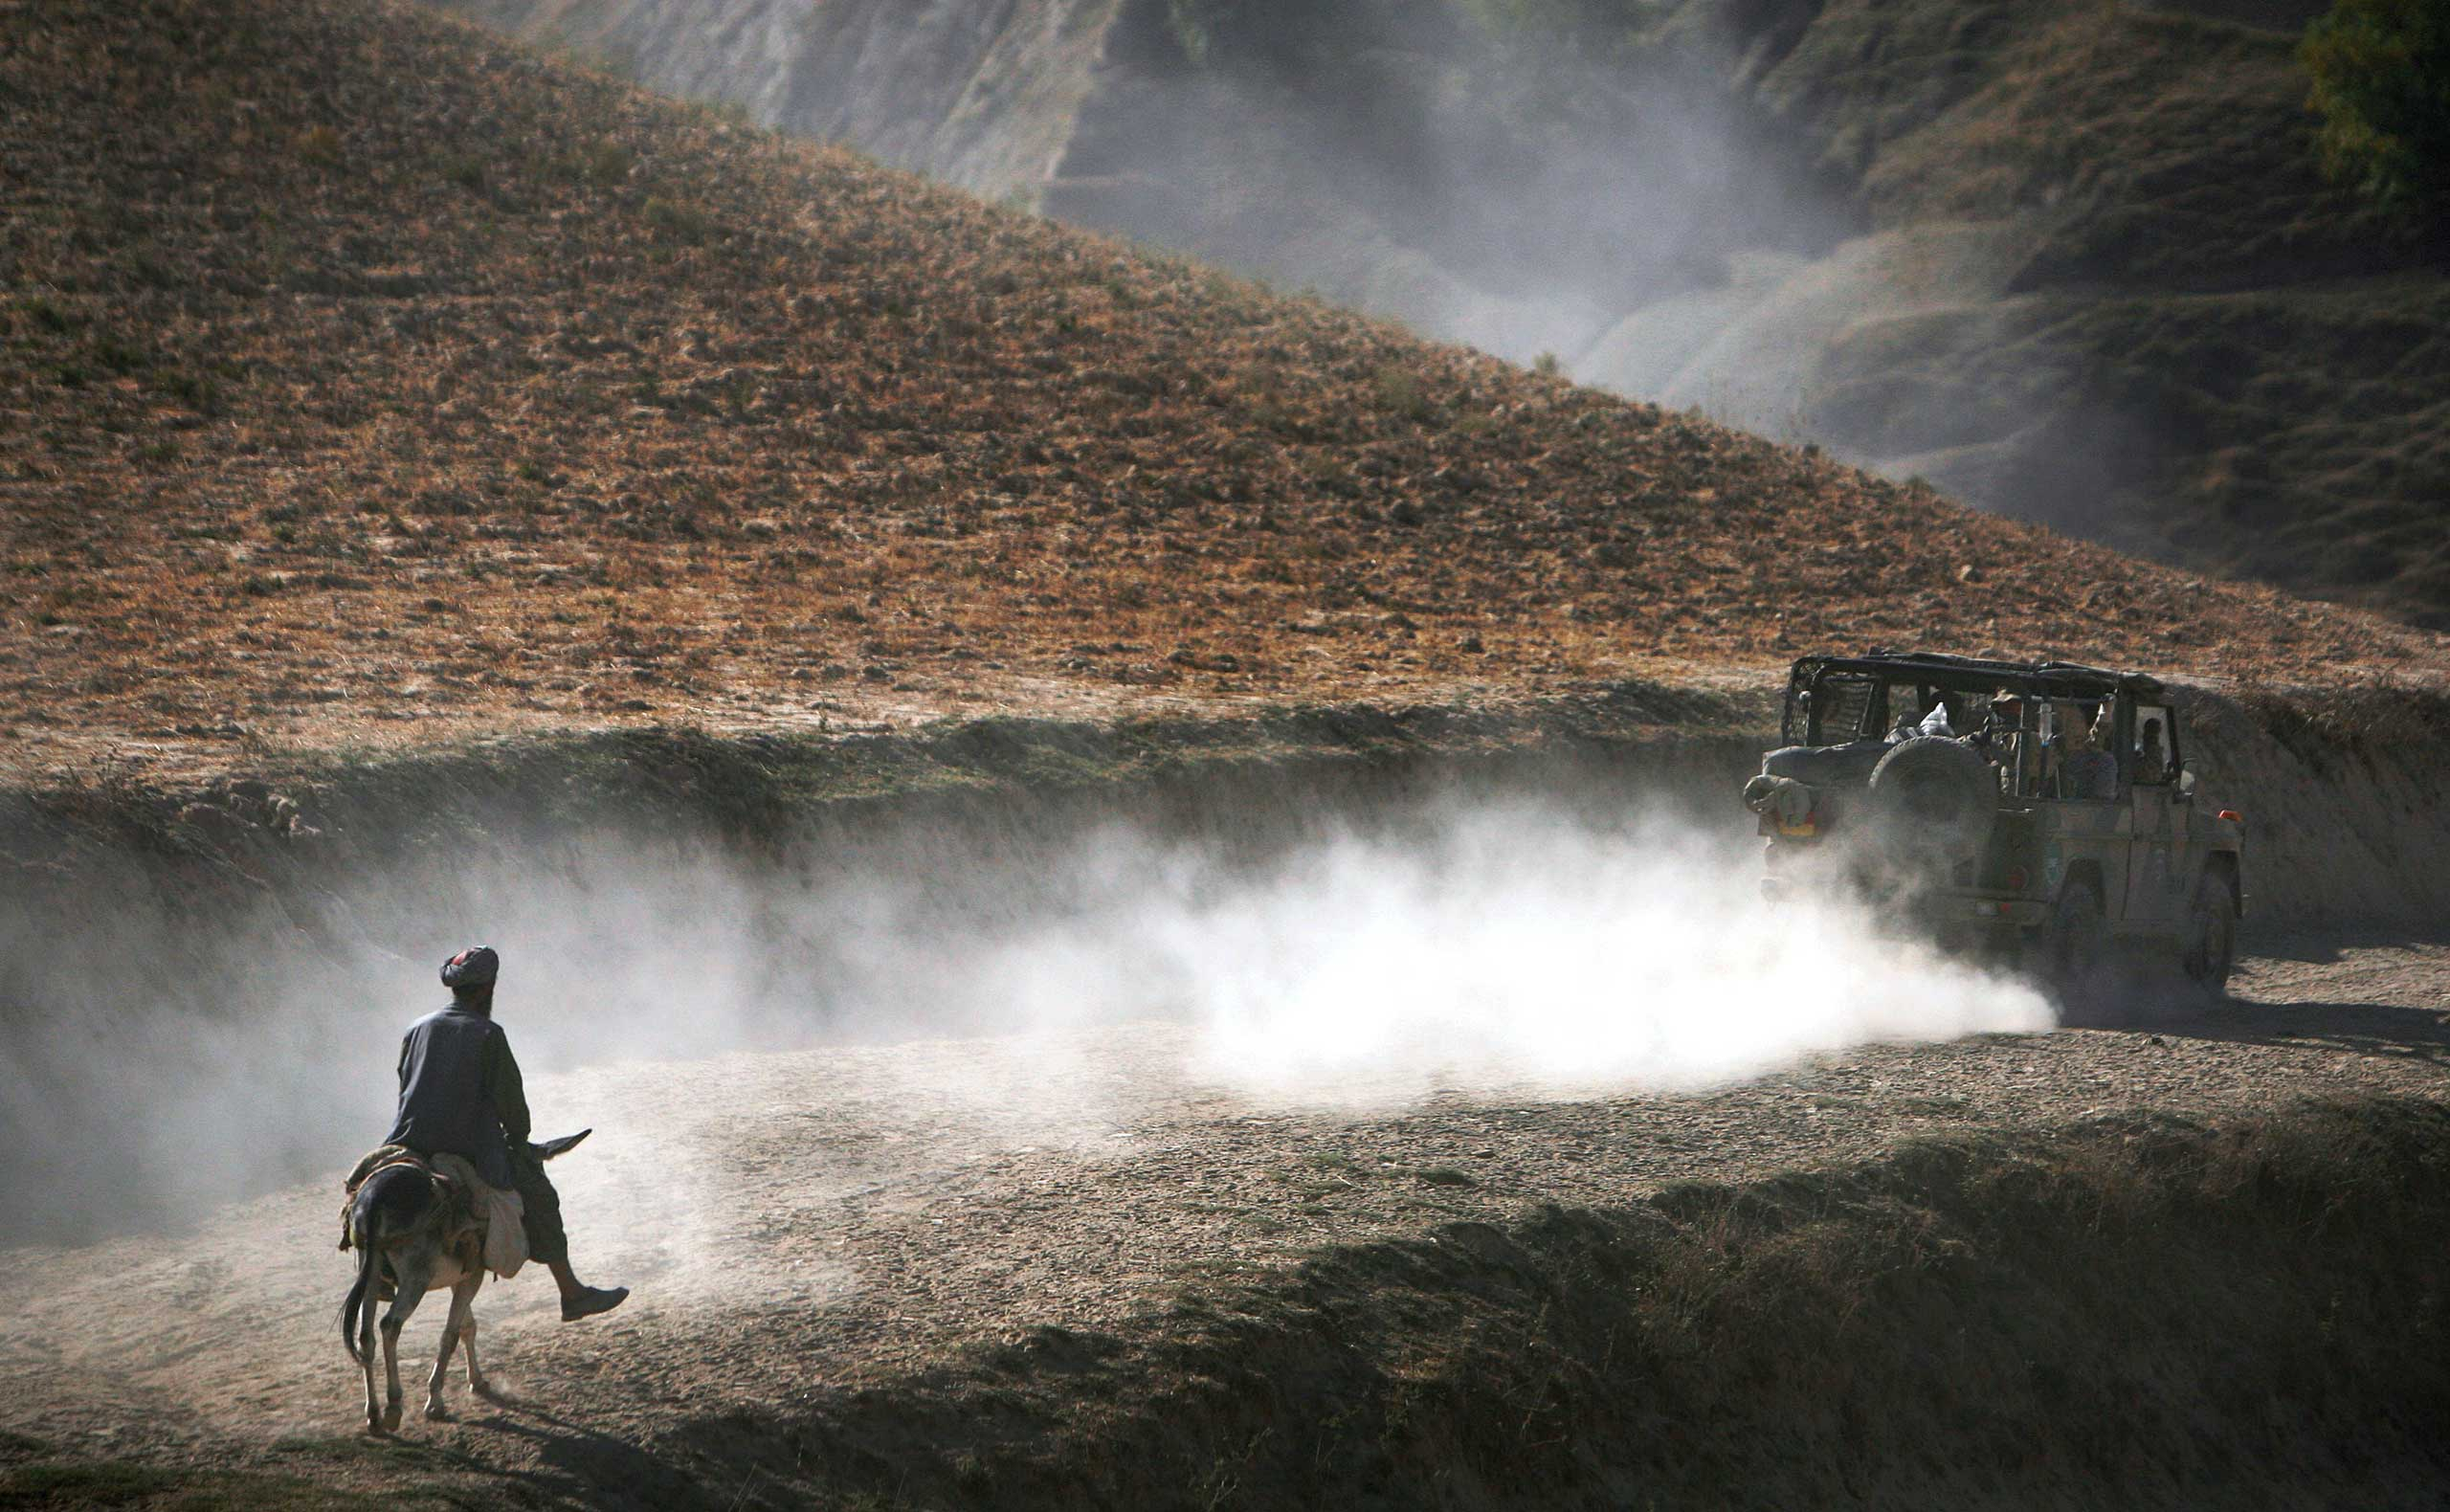 An Afghan man on his donkey follows a convoy of German ISAF soldiers patrolling Yaftal E Sofla, in the mountainous region of Feyzabad, on Sept. 15, 2009, east of Kunduz, Afghanistan.